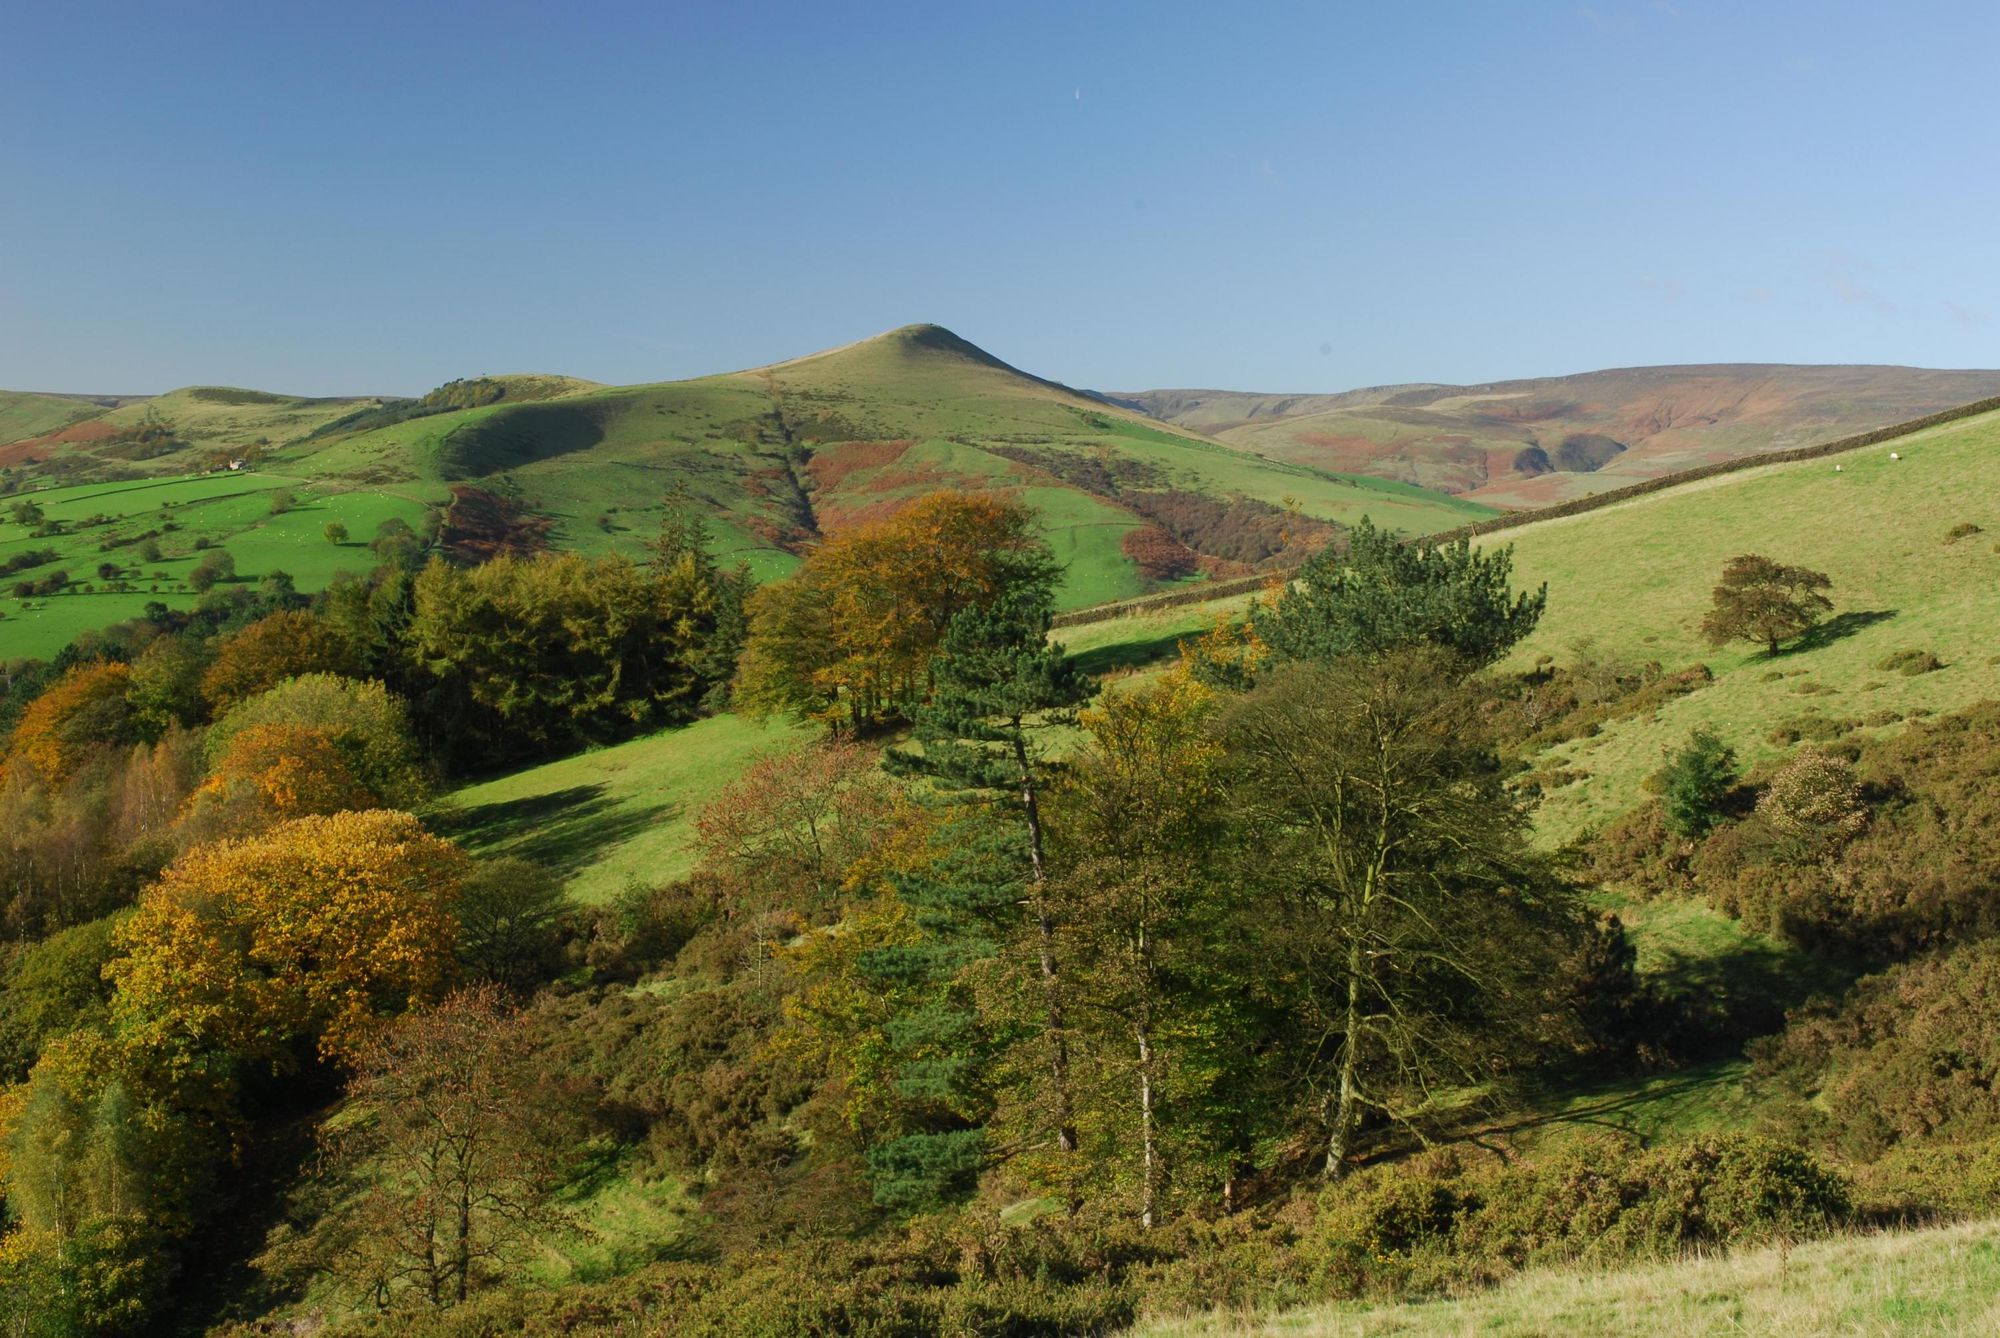 Hotels, Cottages, B&Bs & Glamping in Derbyshire & the Peak District - Cool Places to Stay in the UK